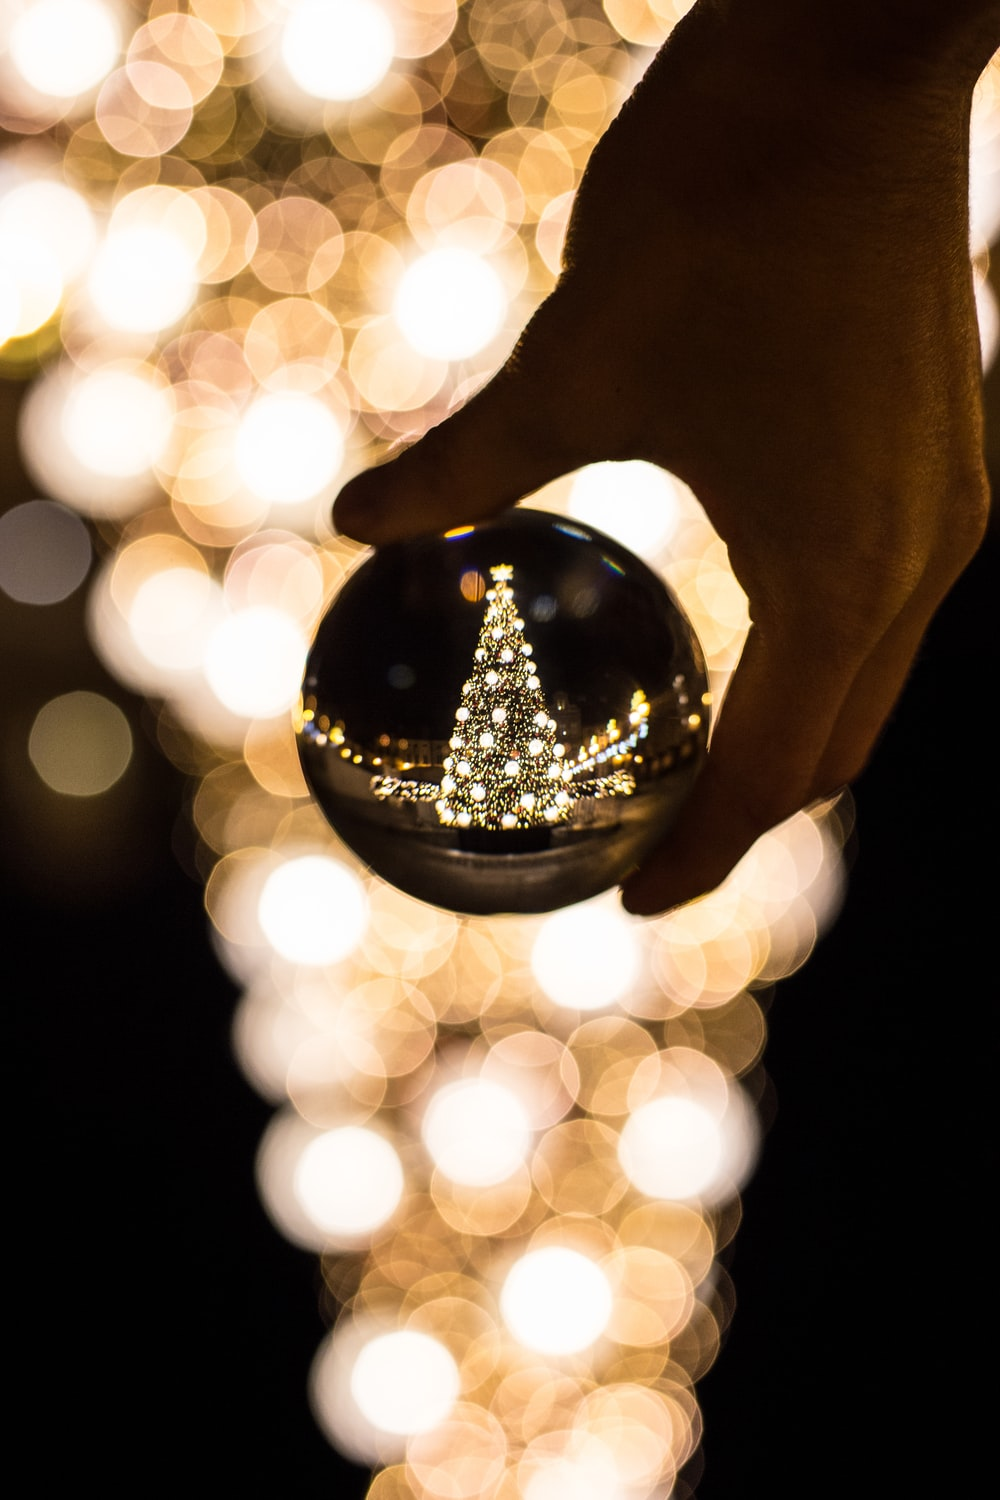 person holding glass bauble